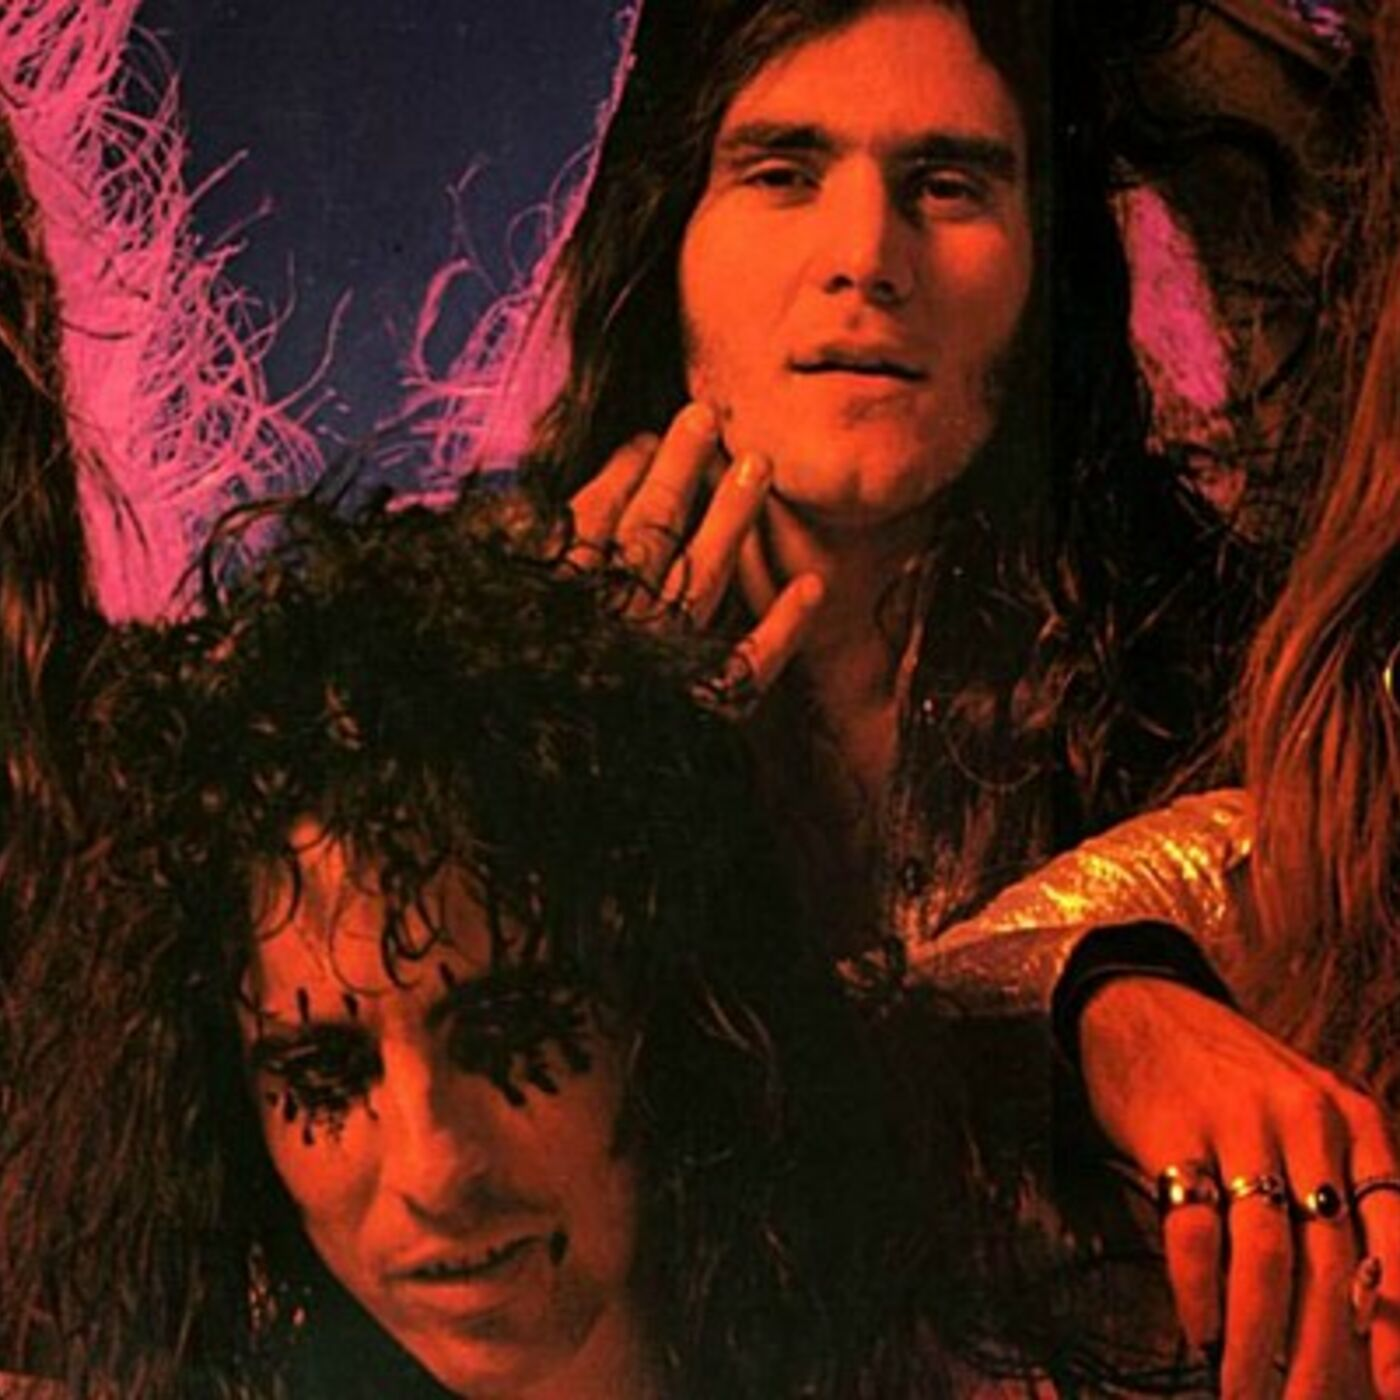 From Spiders to Nightmares: Part 1 of A Very Suspect look at ALICE COOPER